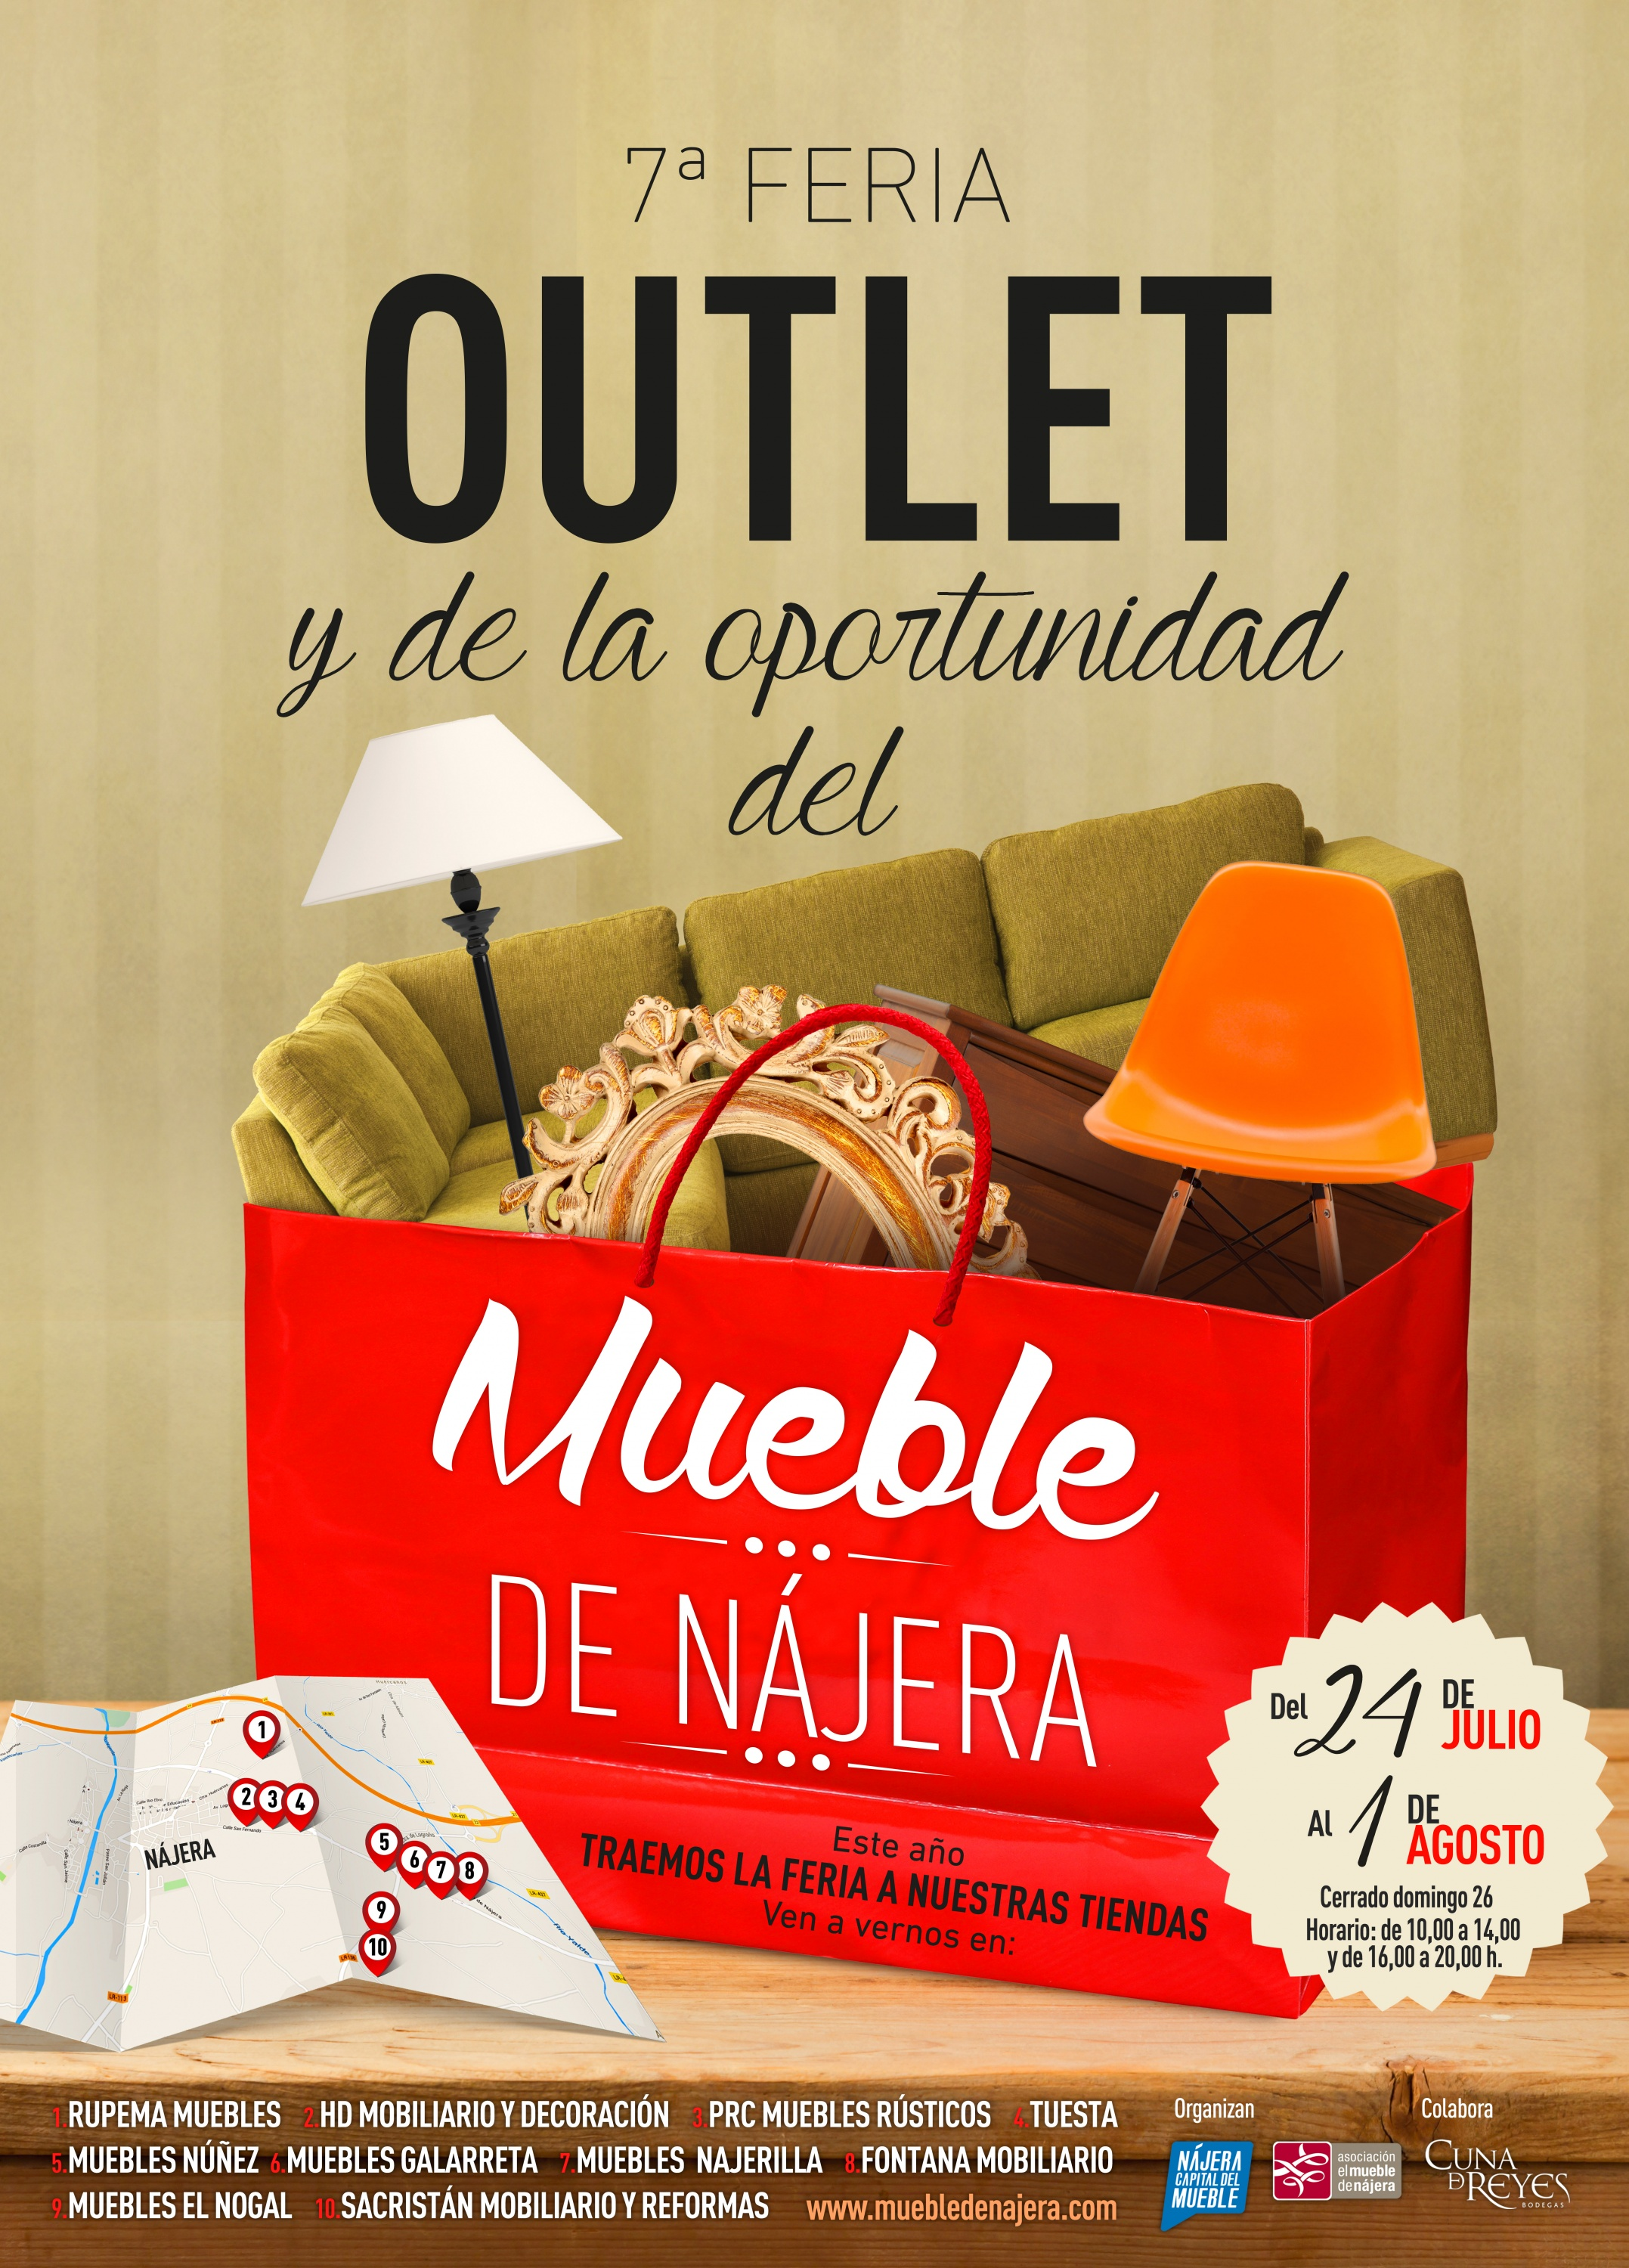 7 feria outlet del mueble de n jera ladinamo for Muebles de najera